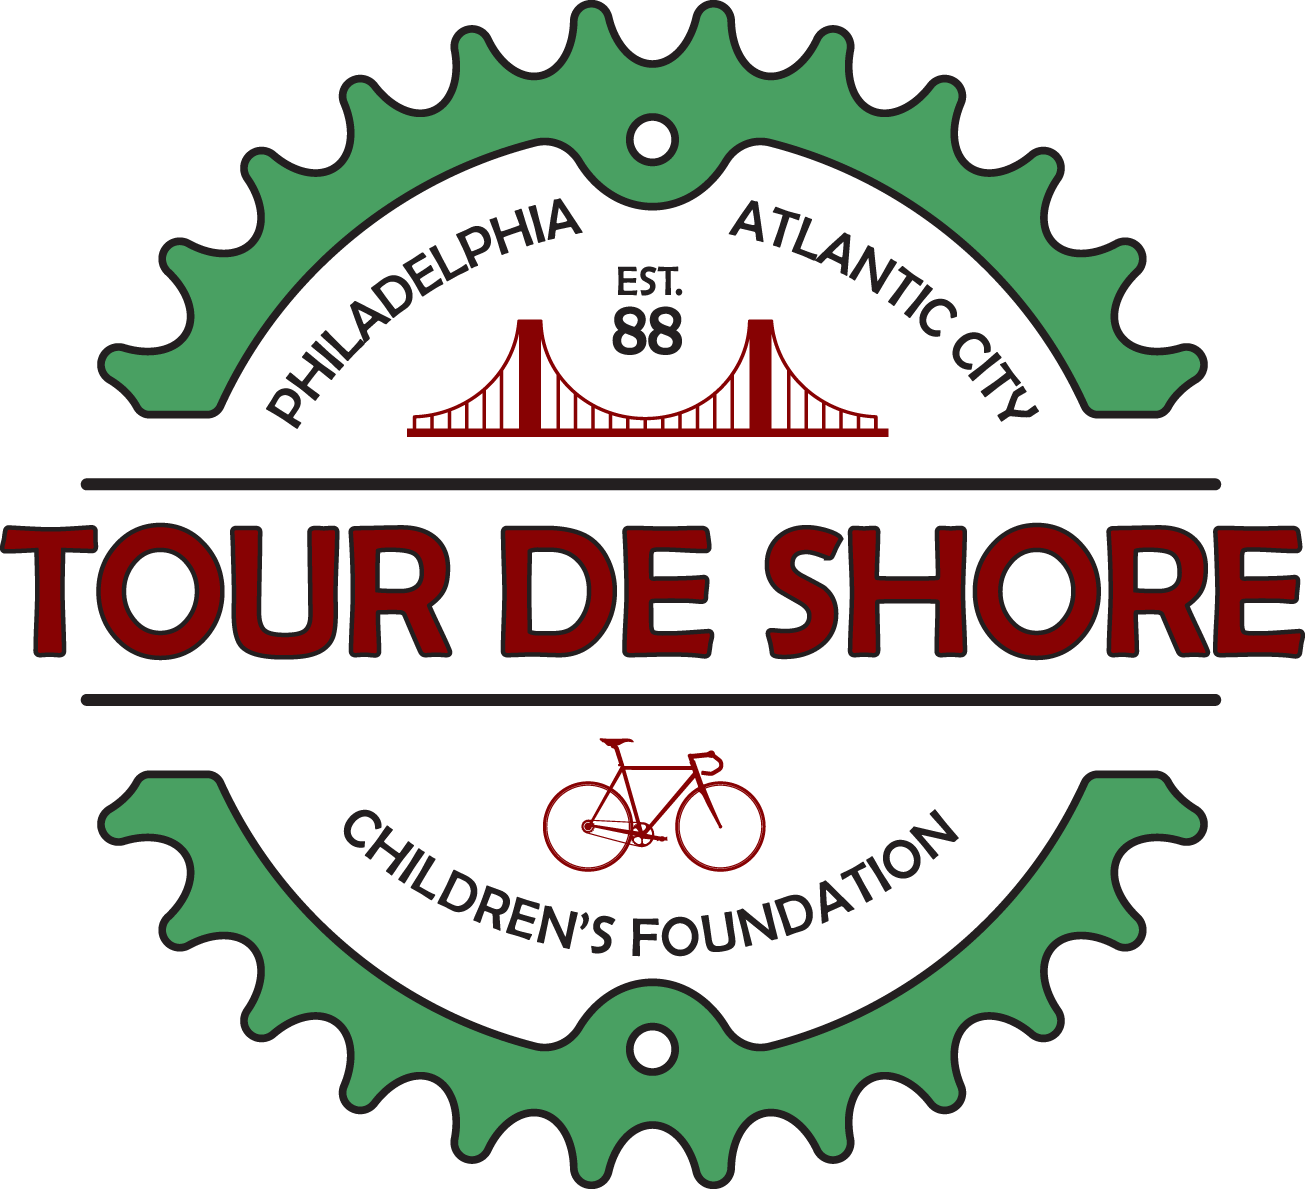 https://i2.wp.com/breathingroomfoundation.org/wp-content/uploads/2018/12/Tour_de_Shore_Logo_2018_Final.png?ssl=1